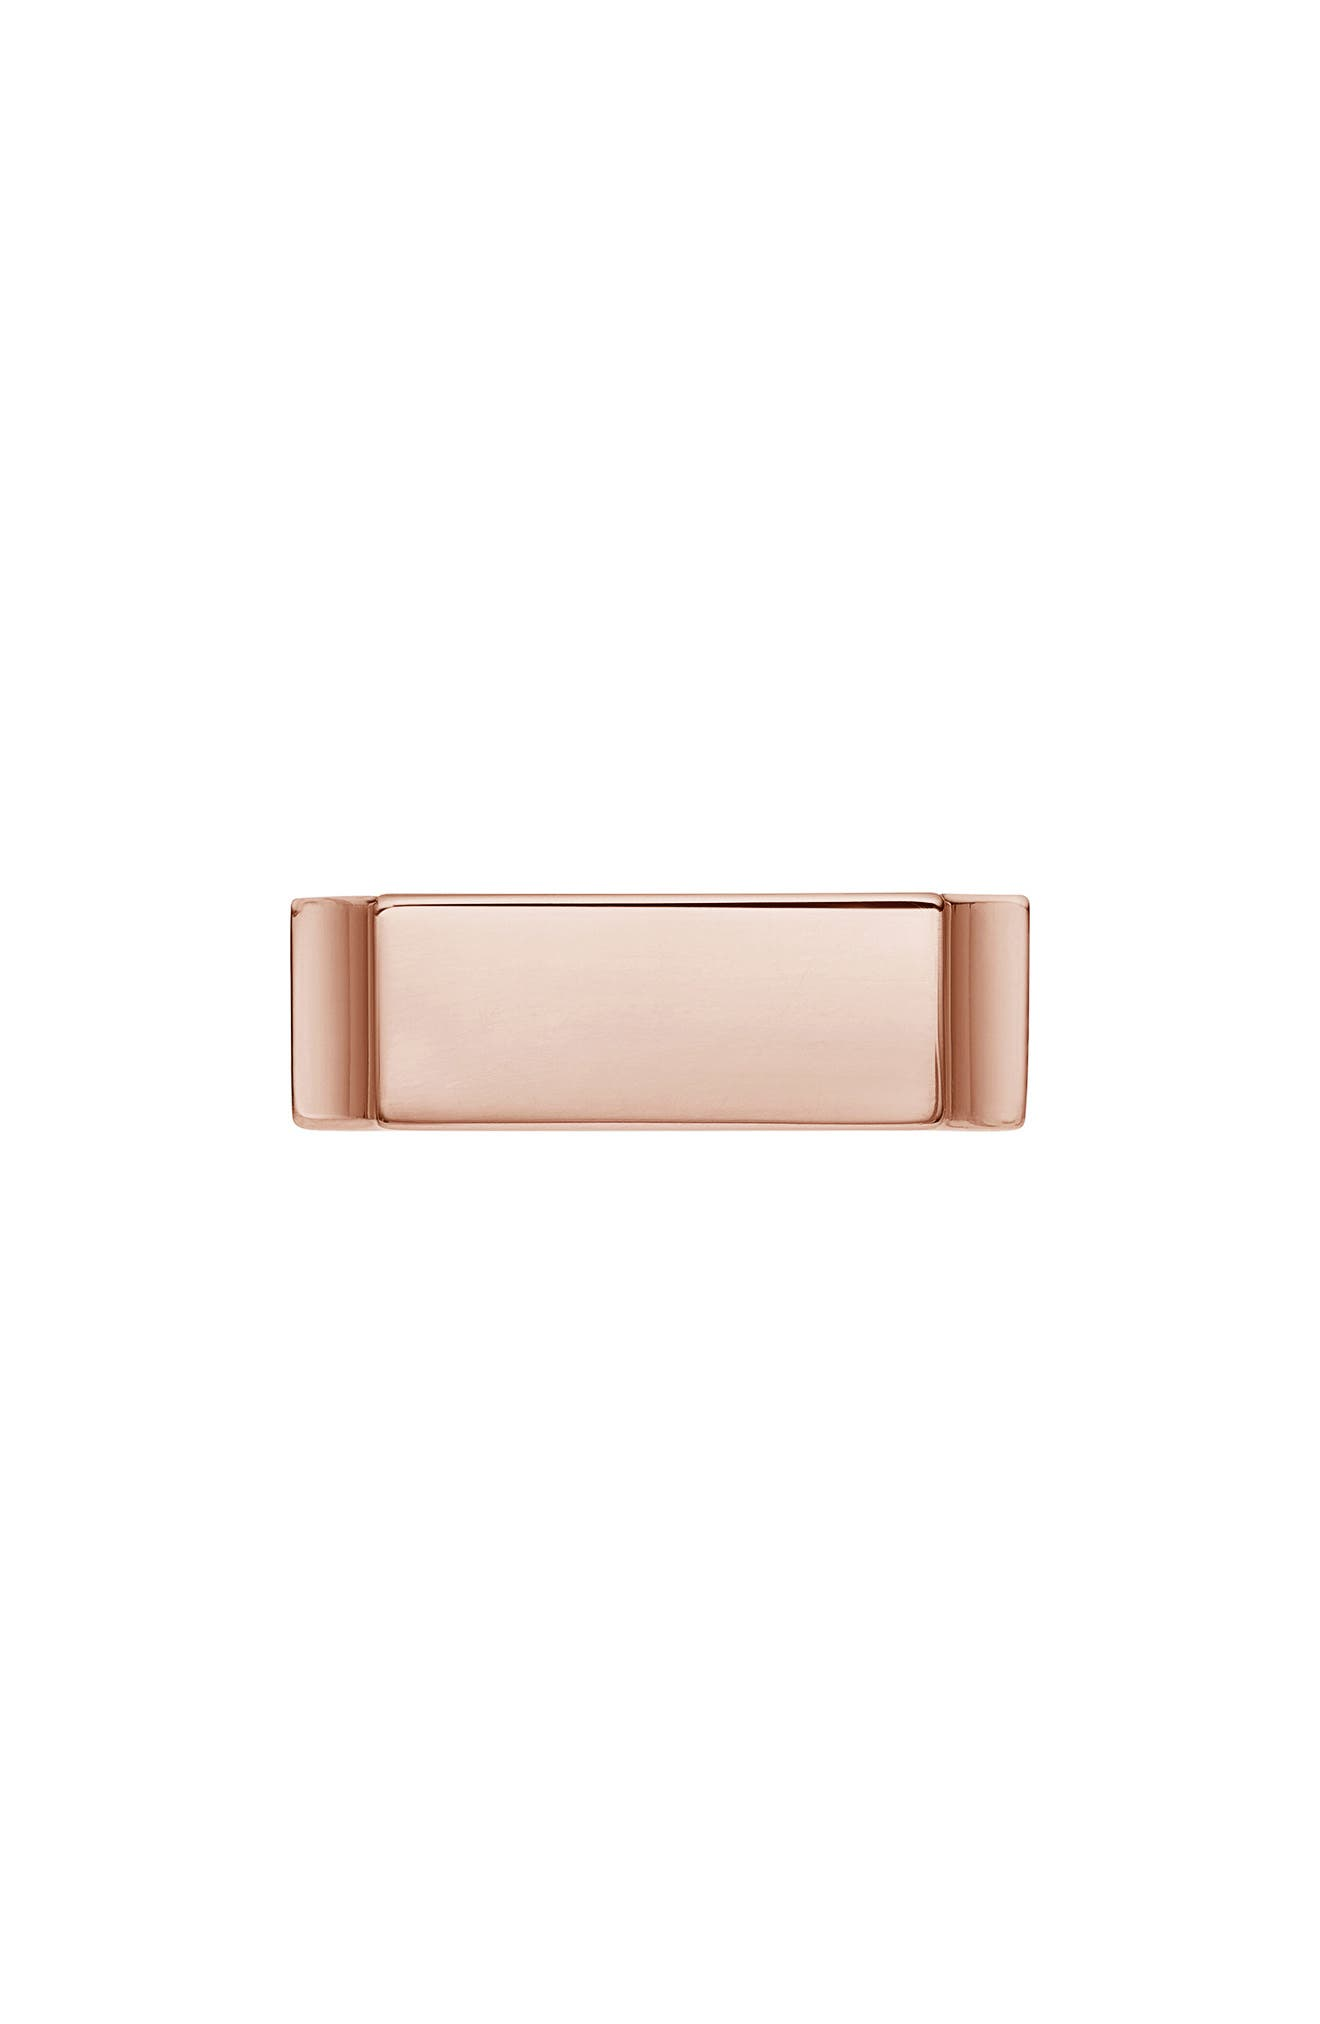 Engravable Wide Signature Ring,                             Main thumbnail 1, color,                             ROSE GOLD